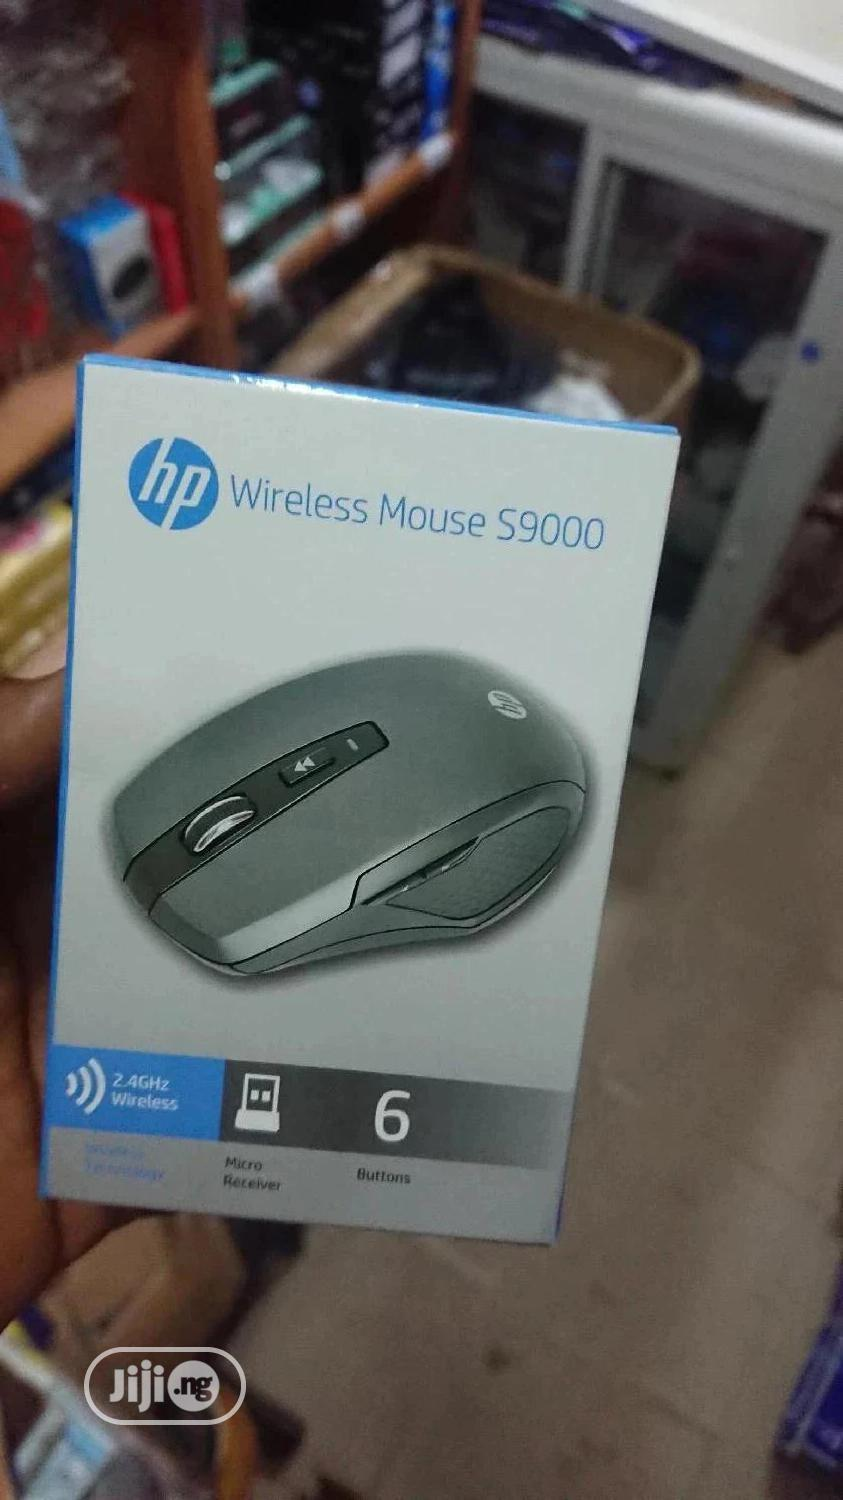 Wireless Mouse. 2.5GHZ